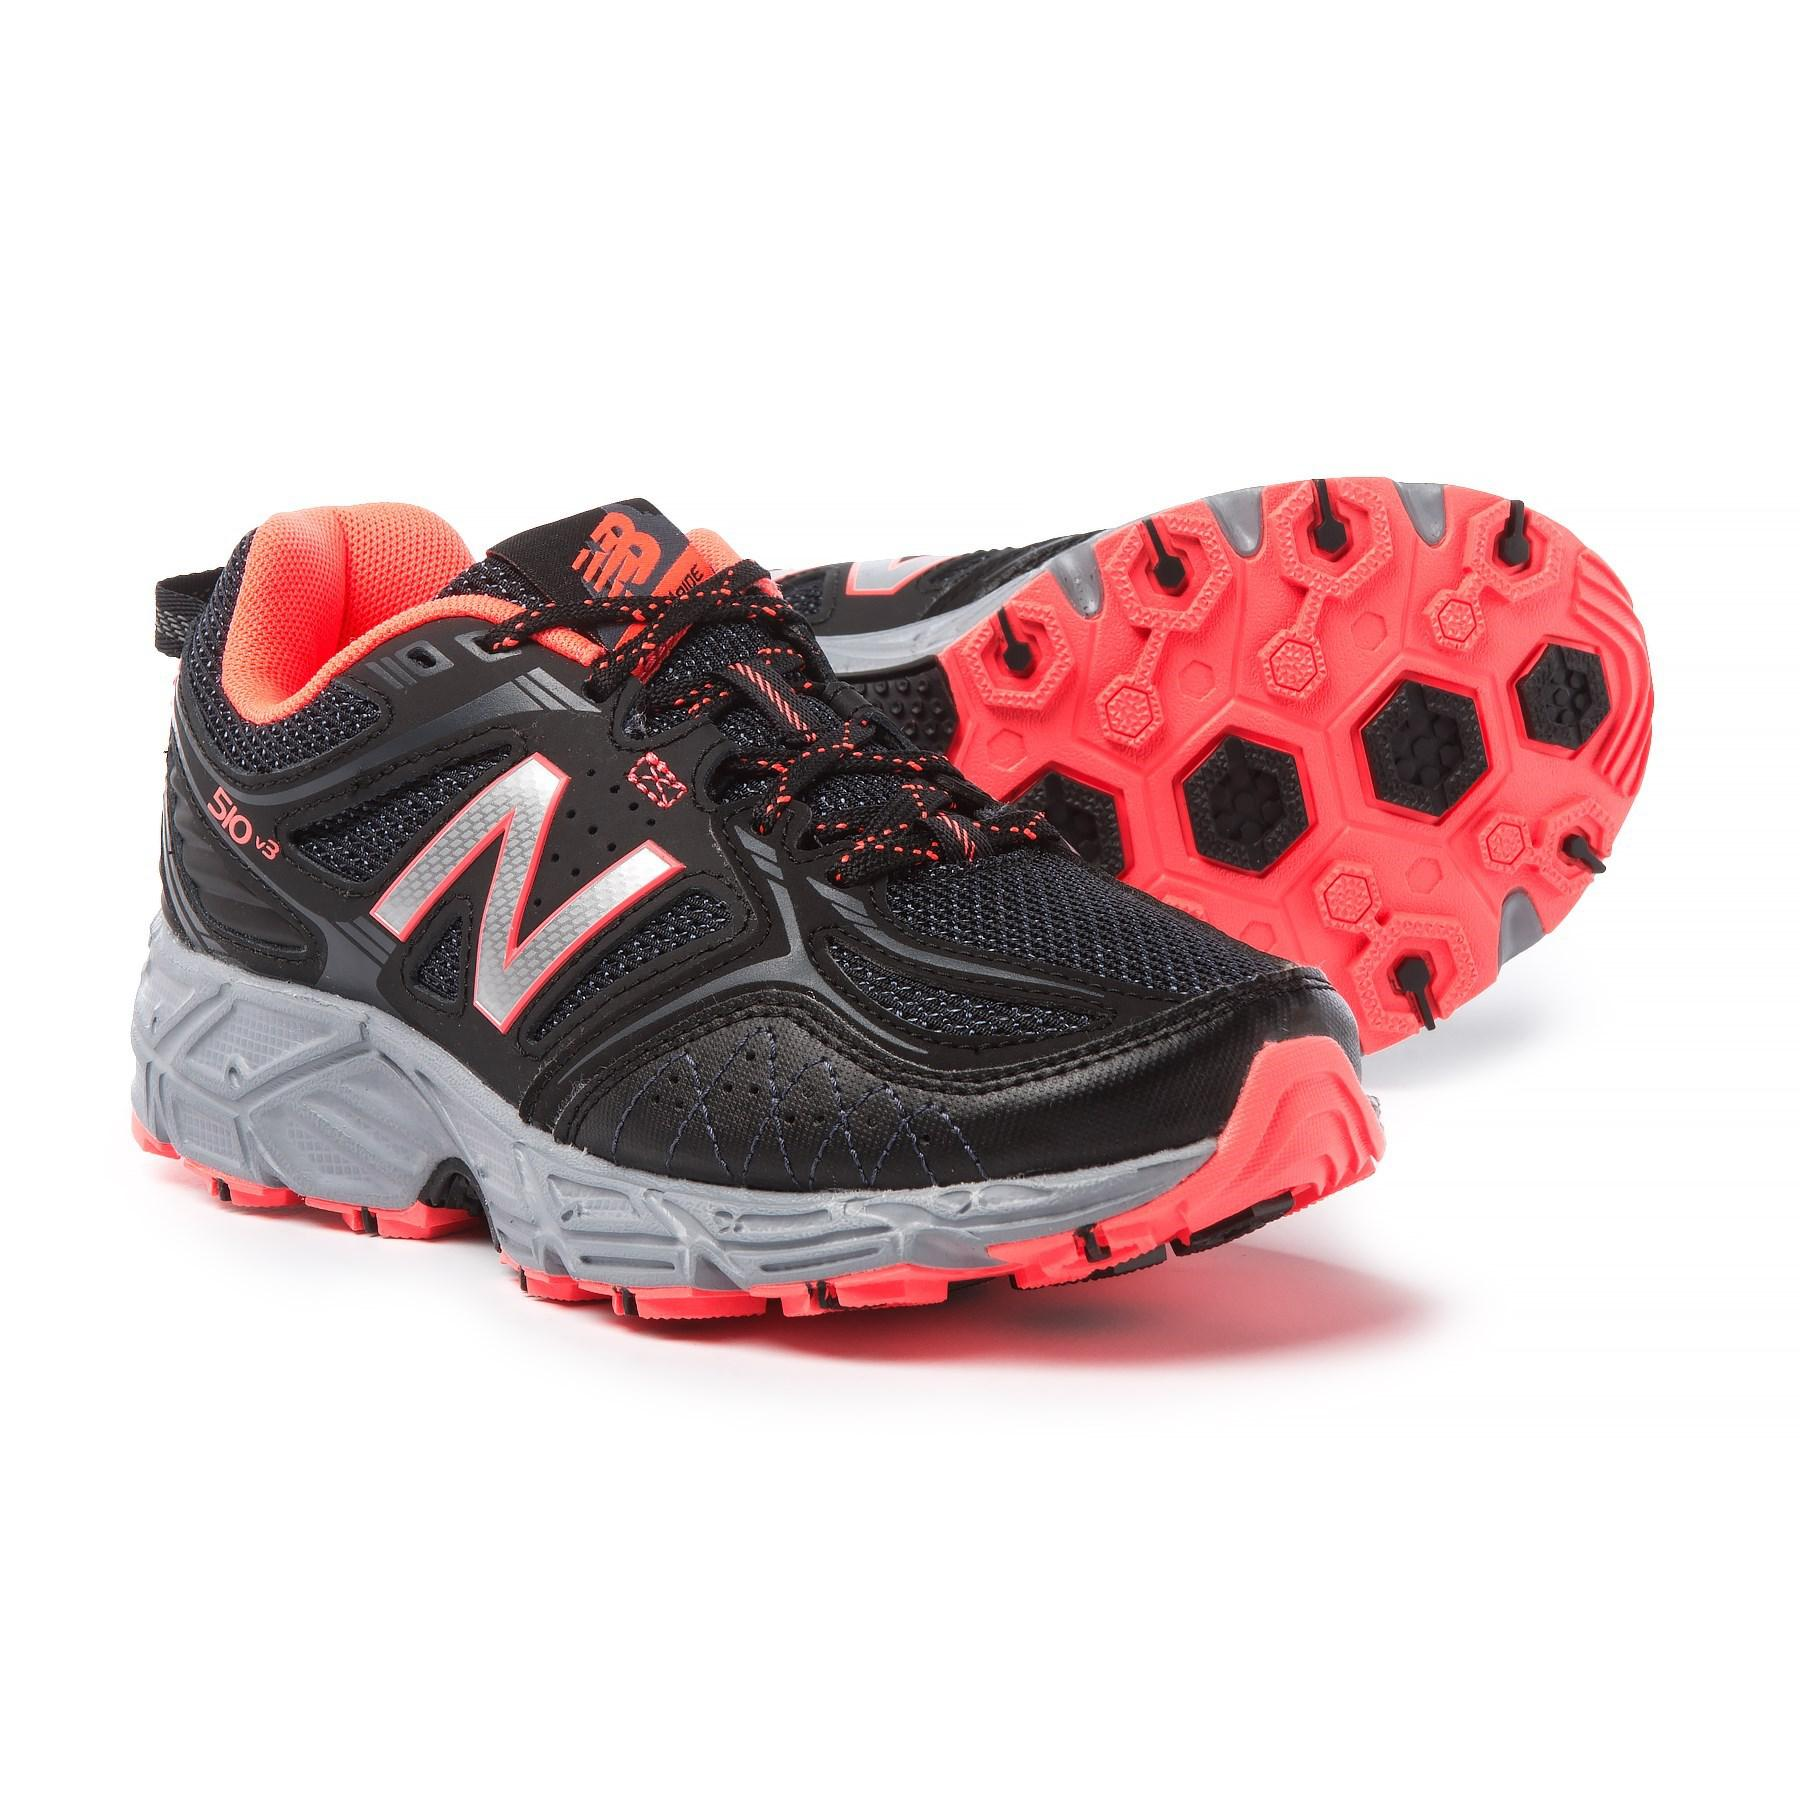 e4a0632819dd Lyst - New Balance 510v3 Trail Running Shoes (for Women) in Red